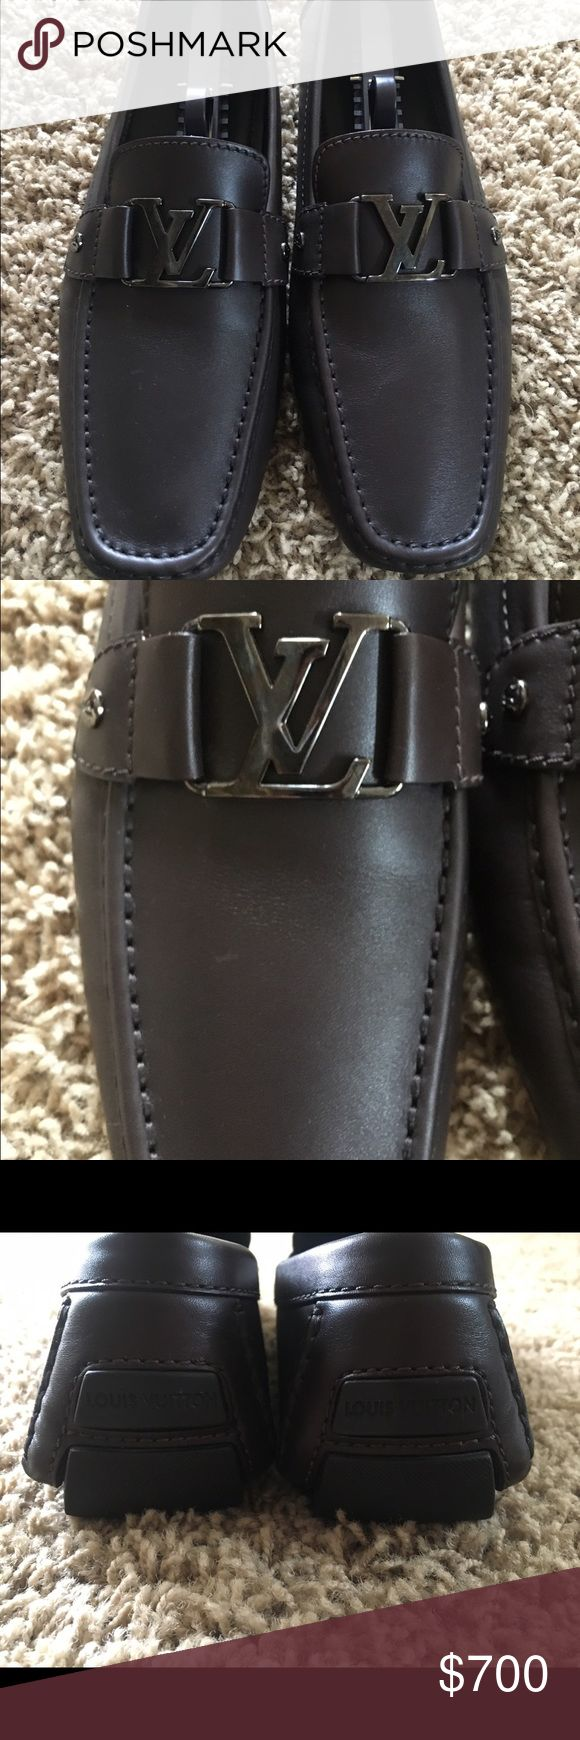 Louis Vuitton men's leather loafers brown Brand new never worn men's loafers Louis Vuitton Shoes Moccasins